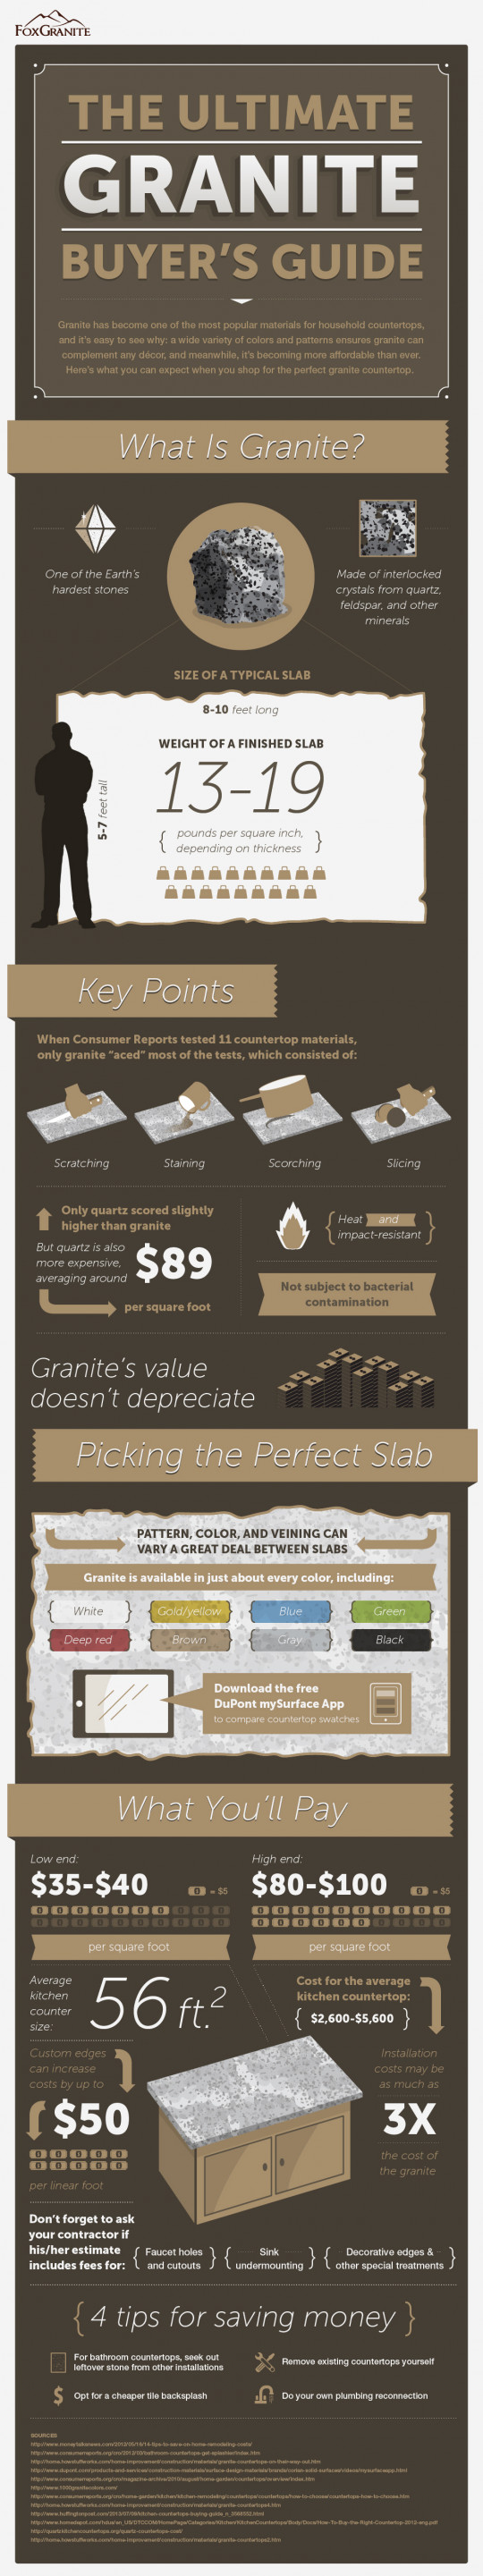 The Ultimate Granite Buyer